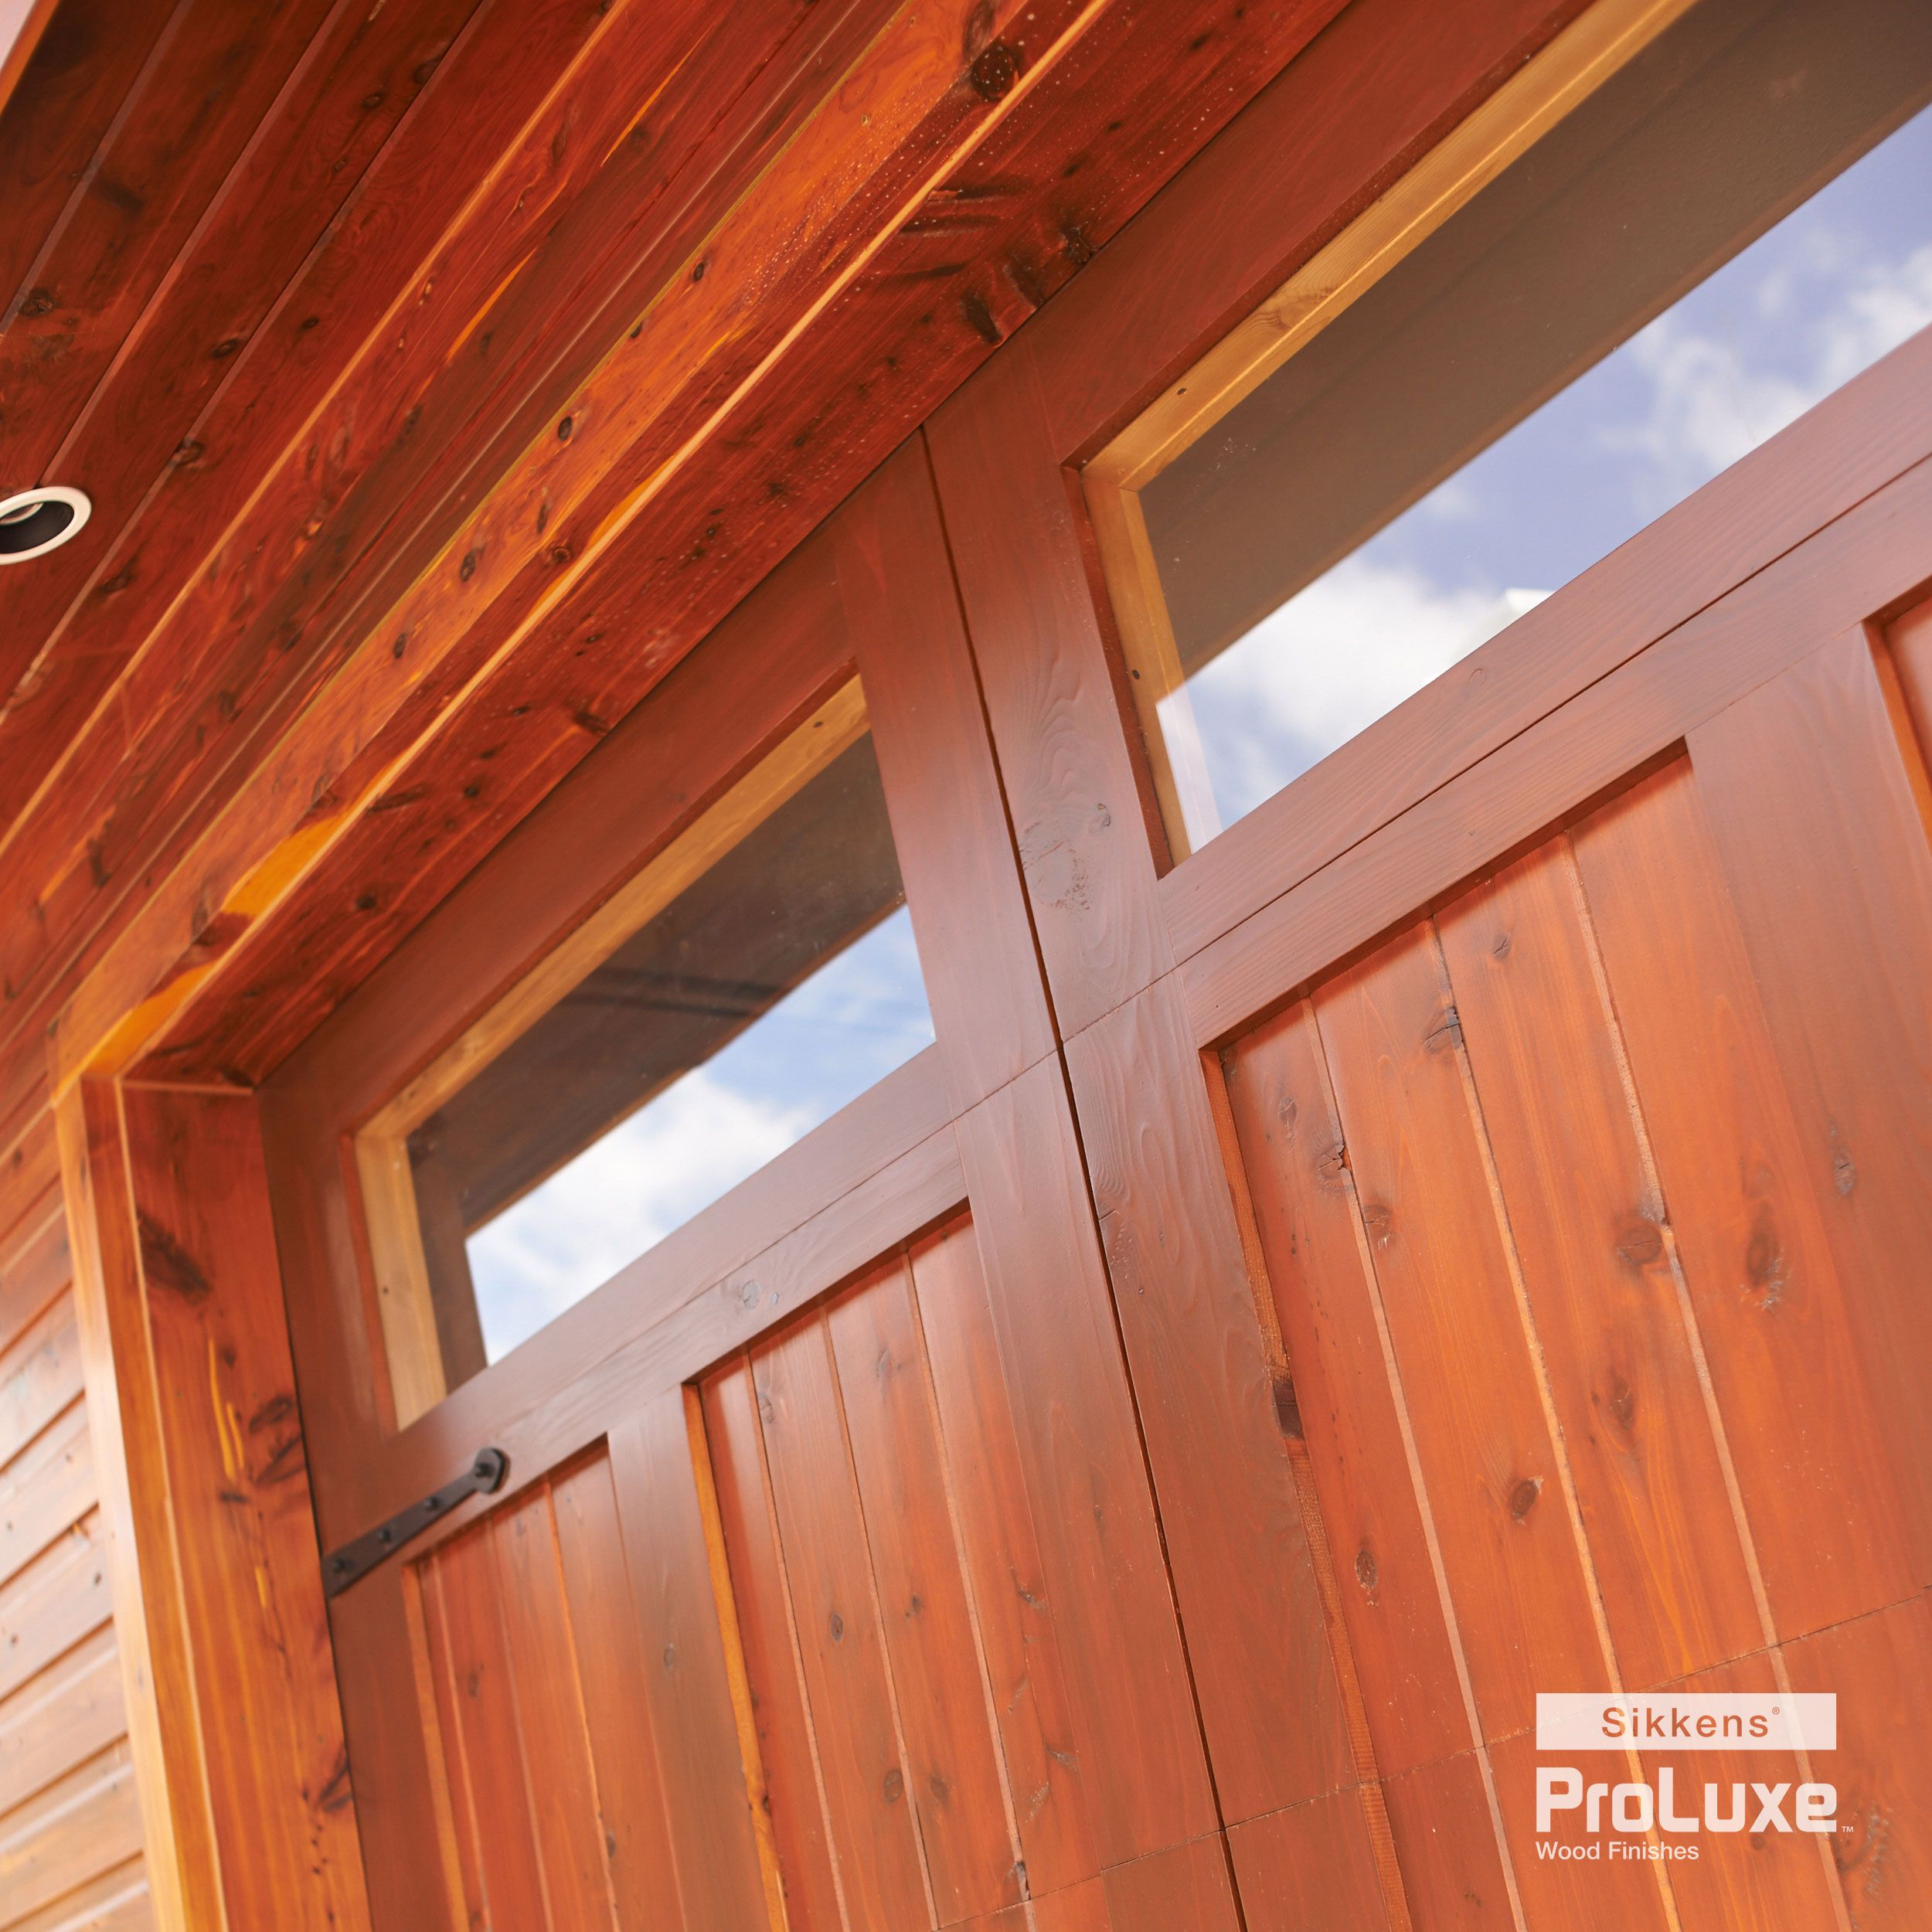 Irresistibly Flawless Finish (SIKKENS® PROLUXE™ Cetol® SRD In Redwood) On  Both. Garage DoorsStains